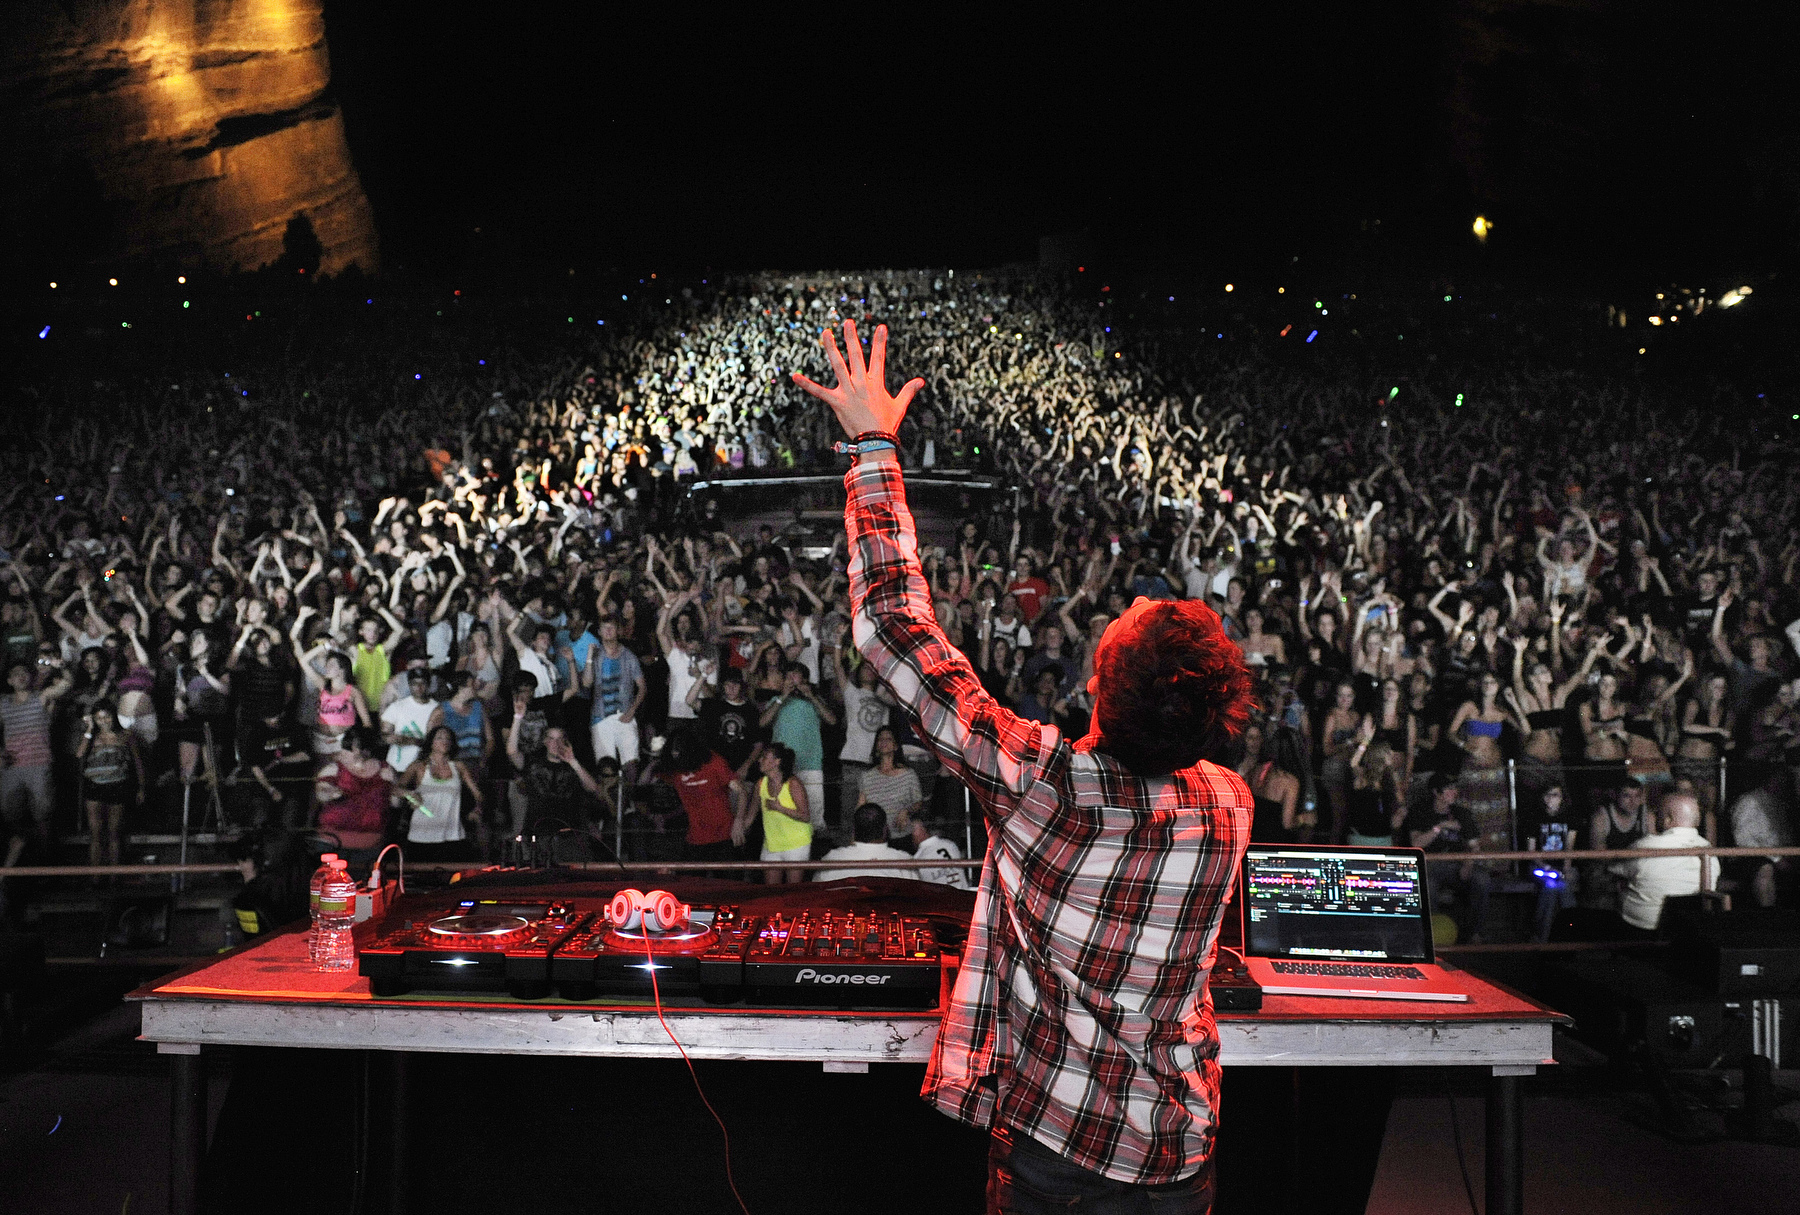 Zedd performs for a sold-out crowd at Red Rocks Amphitheater in Morrison, Colorado. Zedd performed with fellow DJ Skrillex and others.